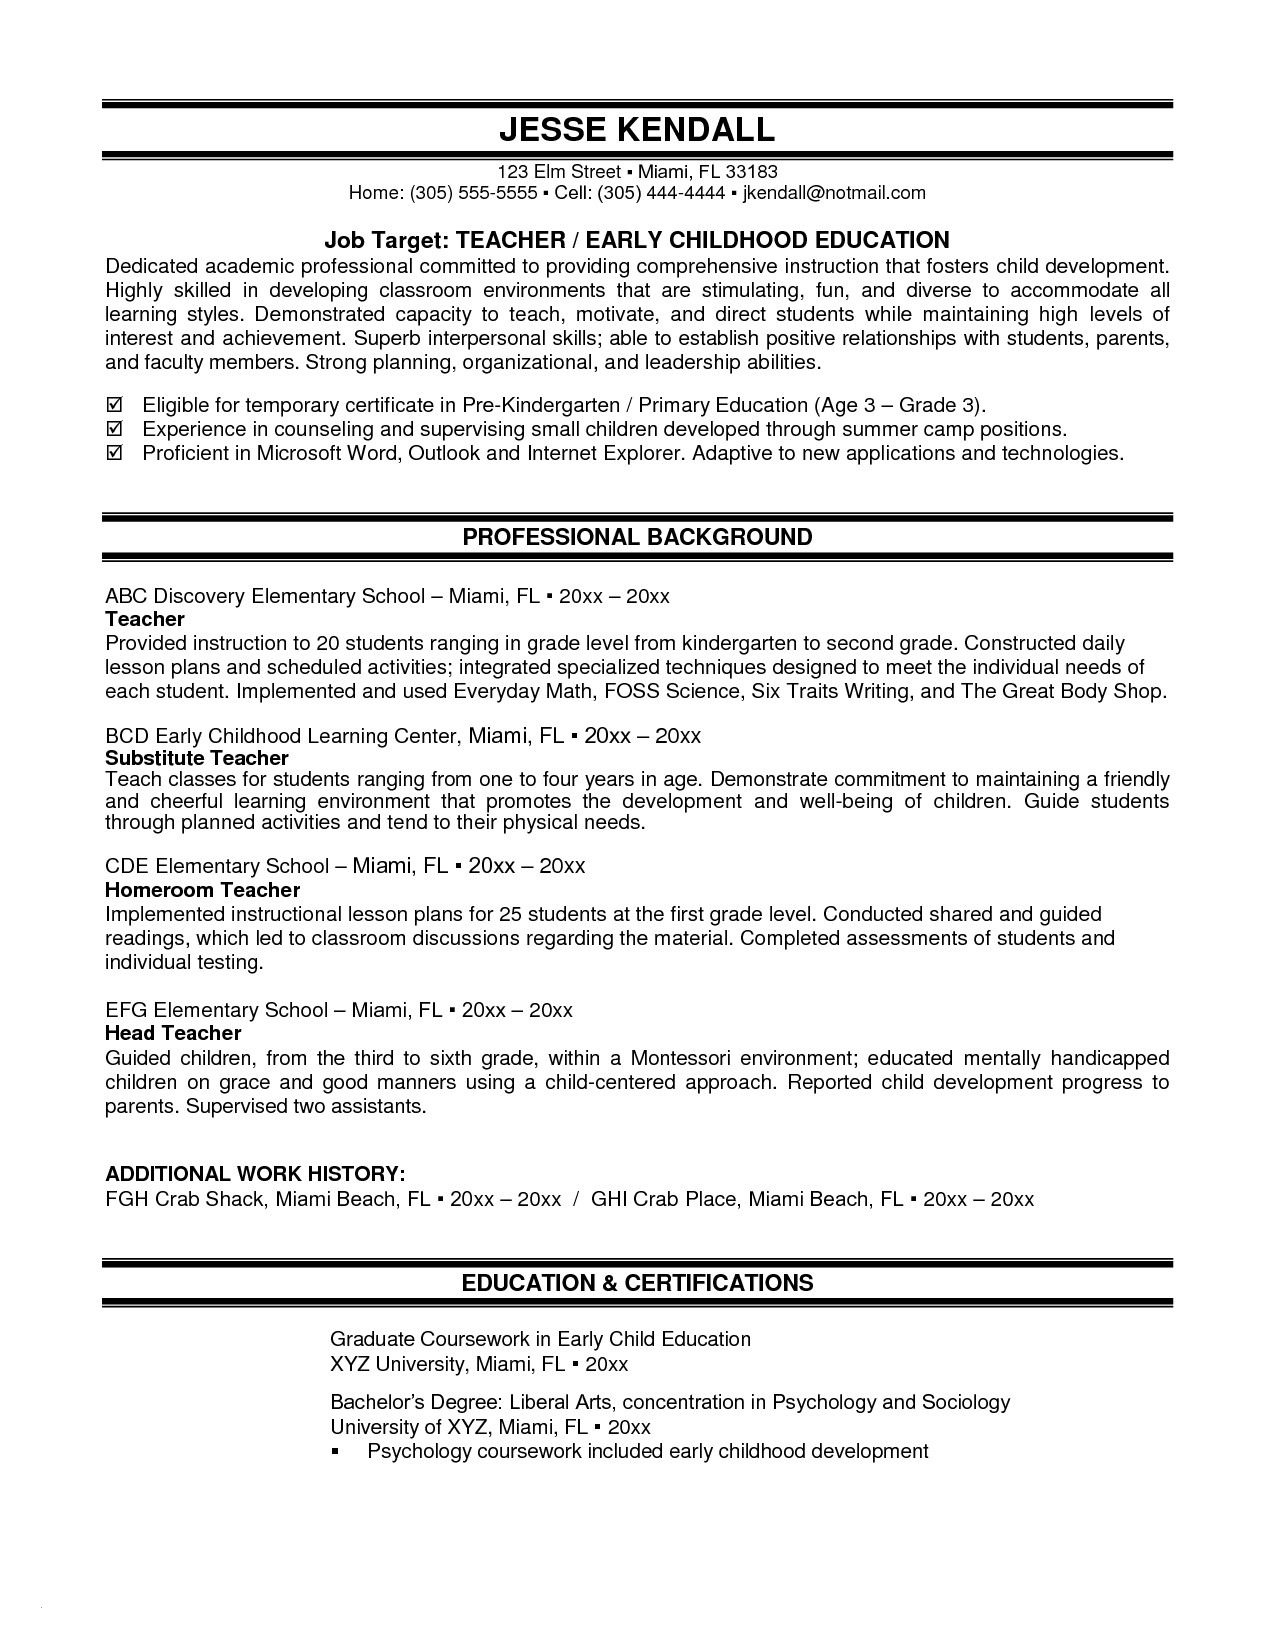 Substitute Teacher Resume Template - Substitute Teacher Resume Examples Inspirational New Elementary